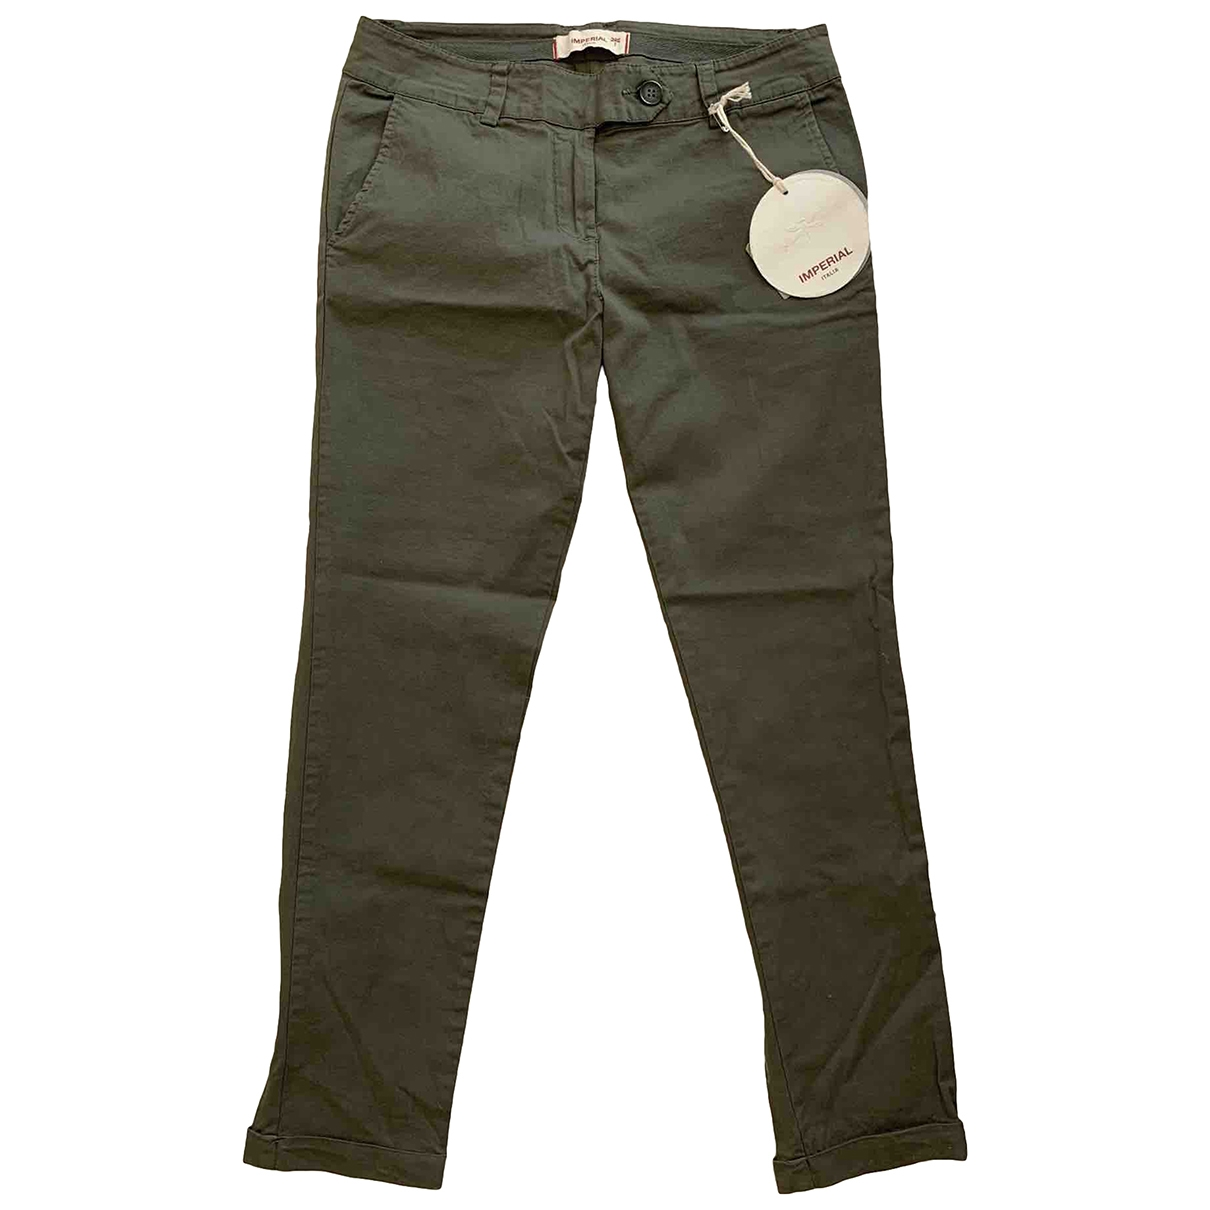 Impérial \N Cotton Trousers for Women XS International